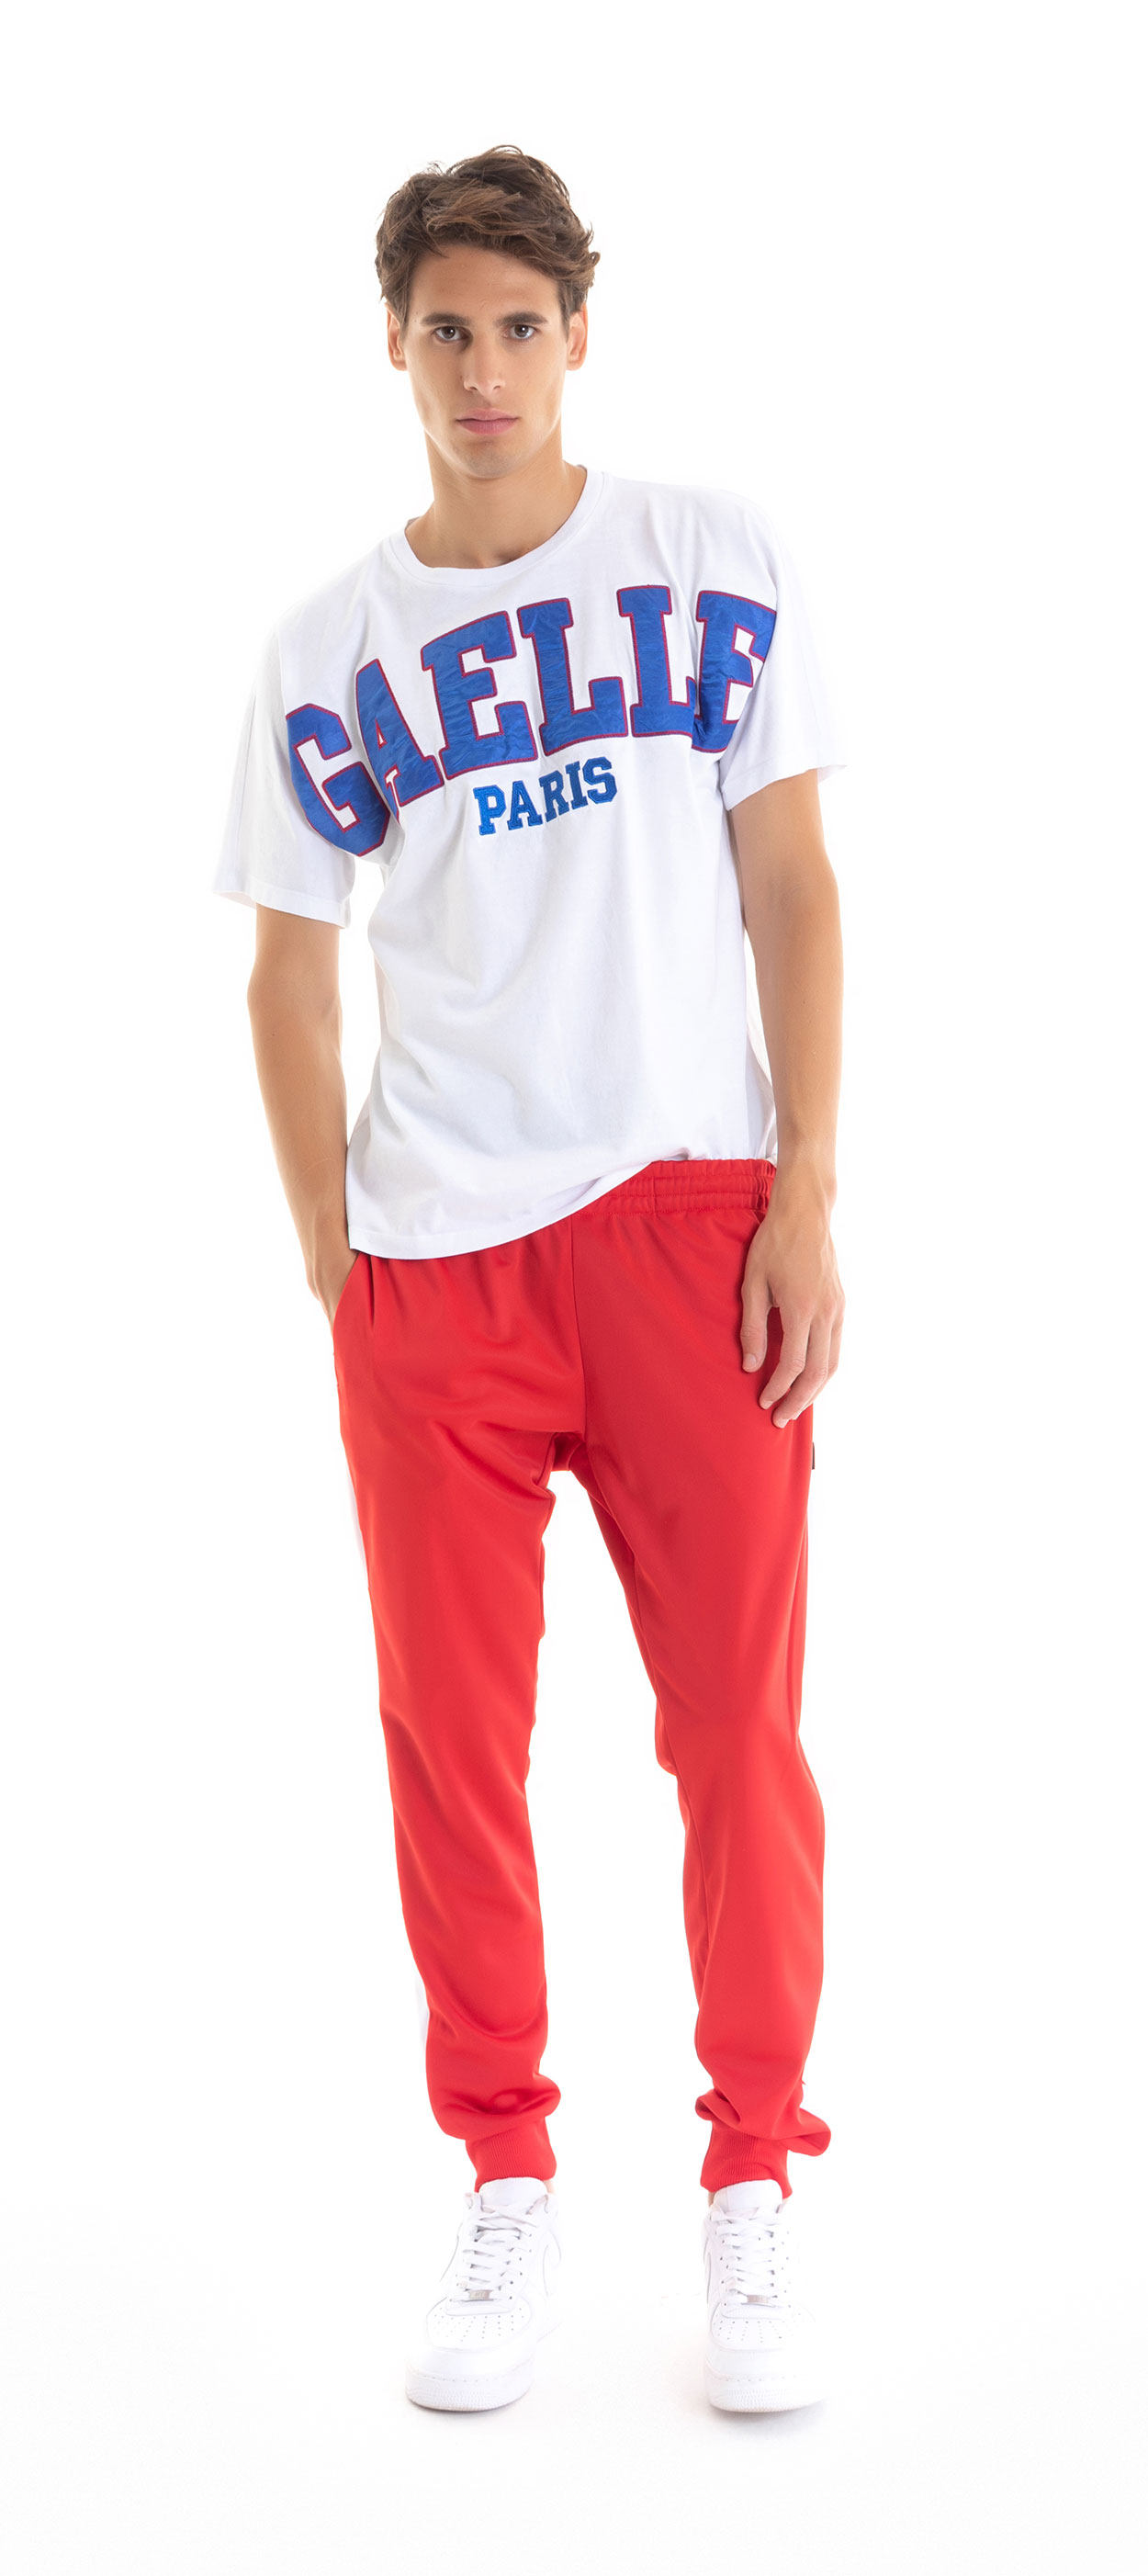 T-SHIRT - GBU2041 - GAELLE PARIS